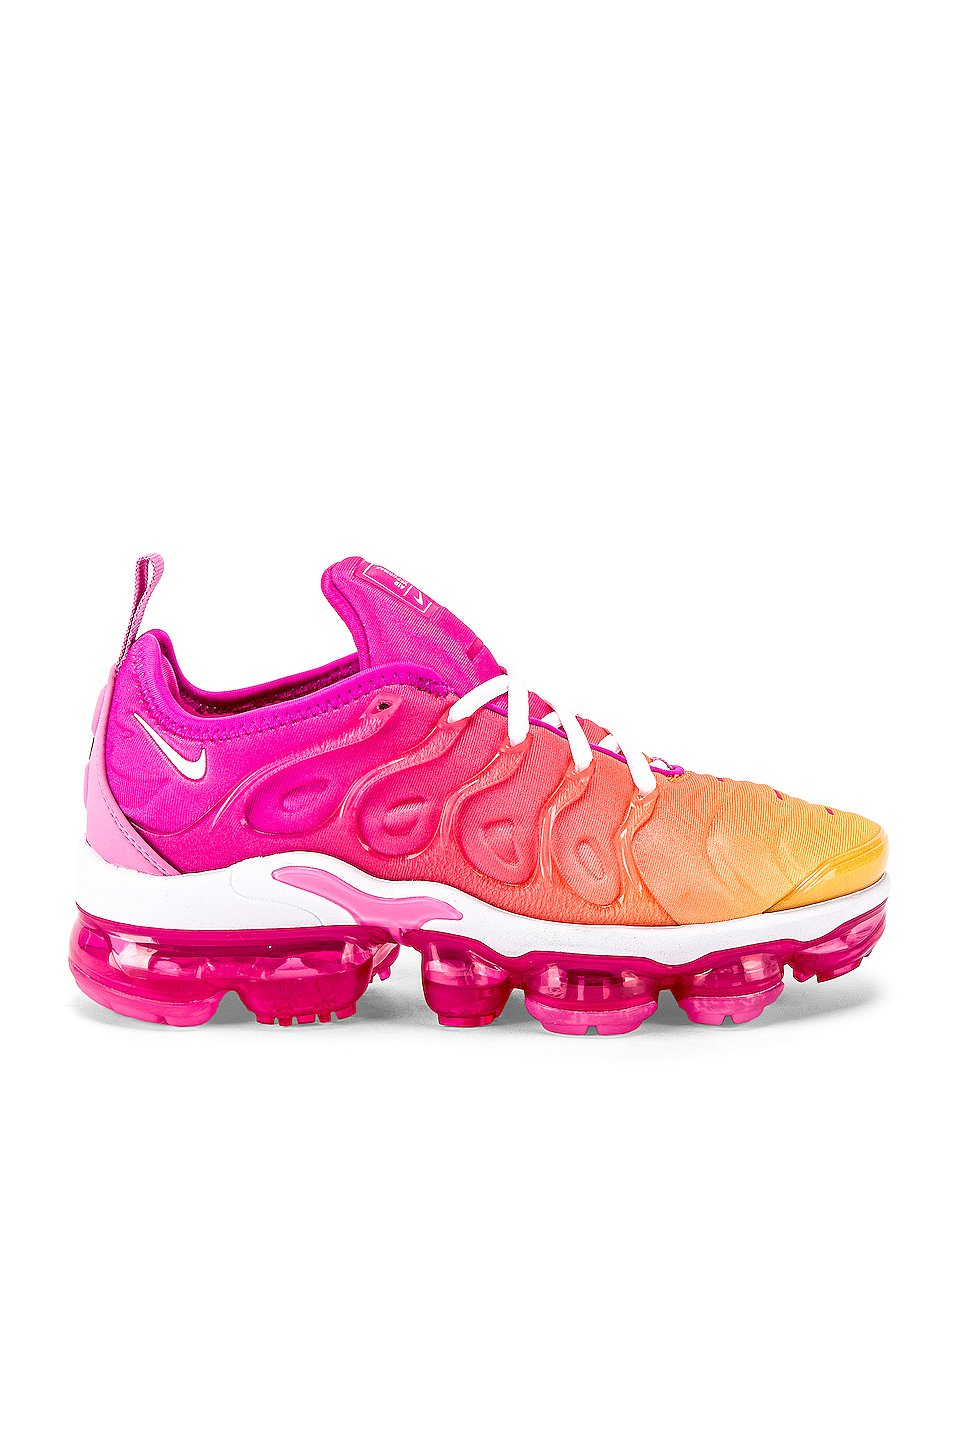 Women's Air Vapormax Plus S2's Sneaker